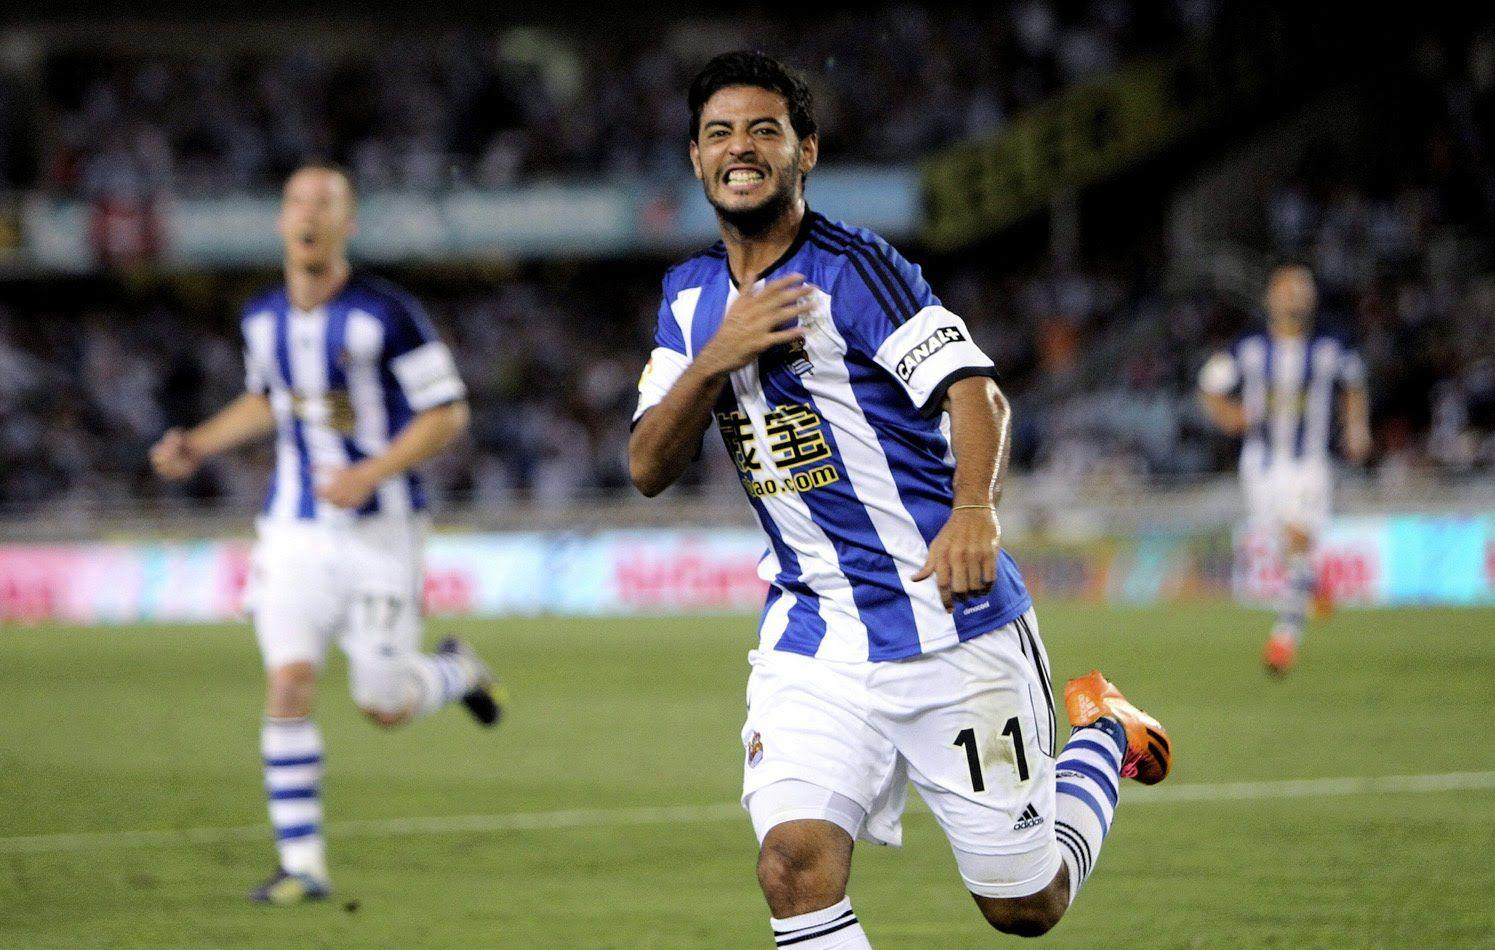 Real Sociedad's Carlos Vela to Sign With LAFC as First DP – Fut Mex